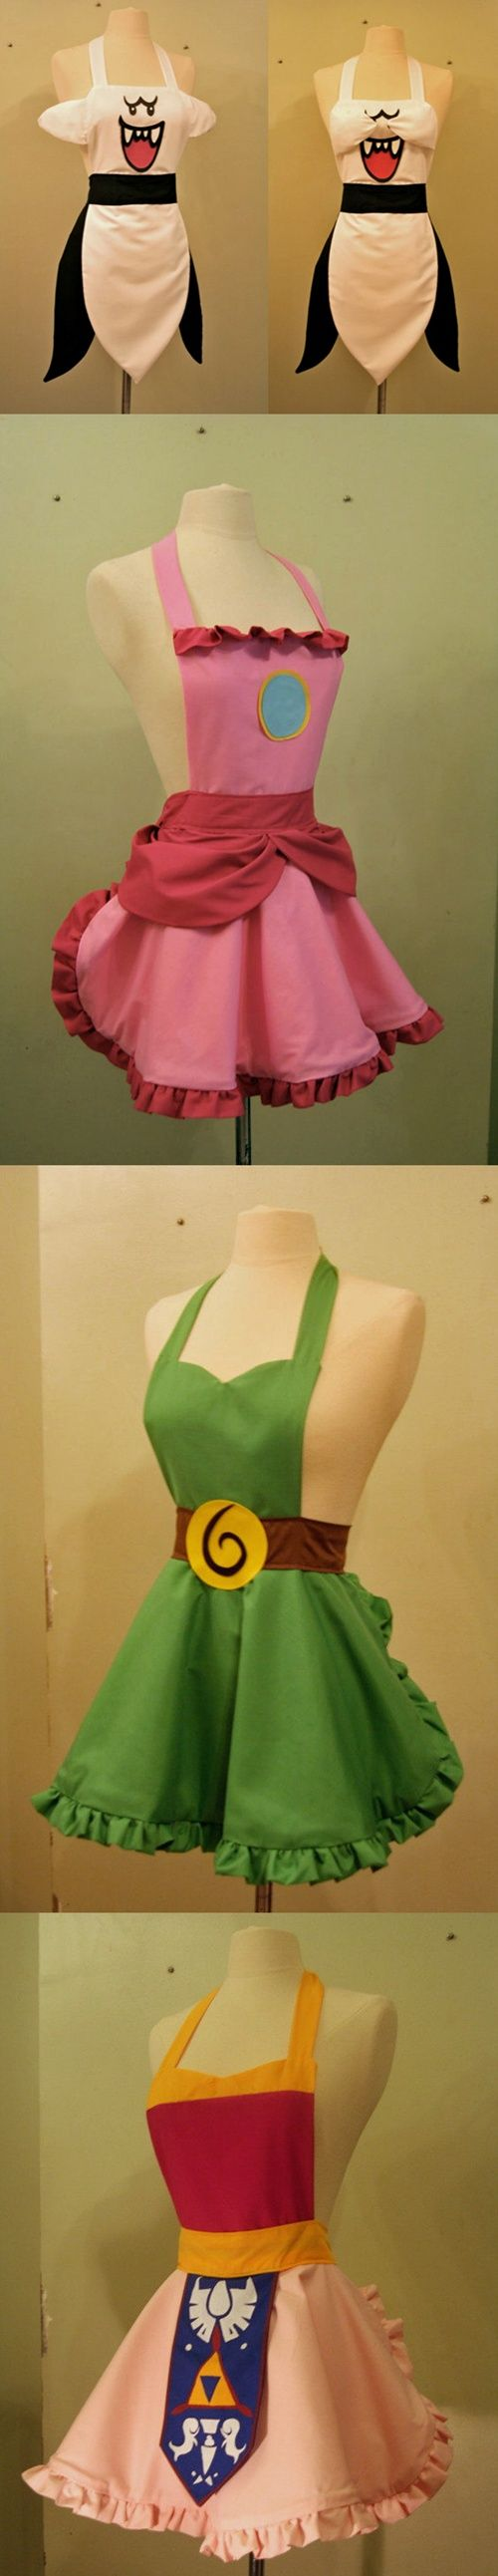 Gamer Images Video game Photos from http://www.edibleinkphotopaper.com Nintendo Themed Aprons